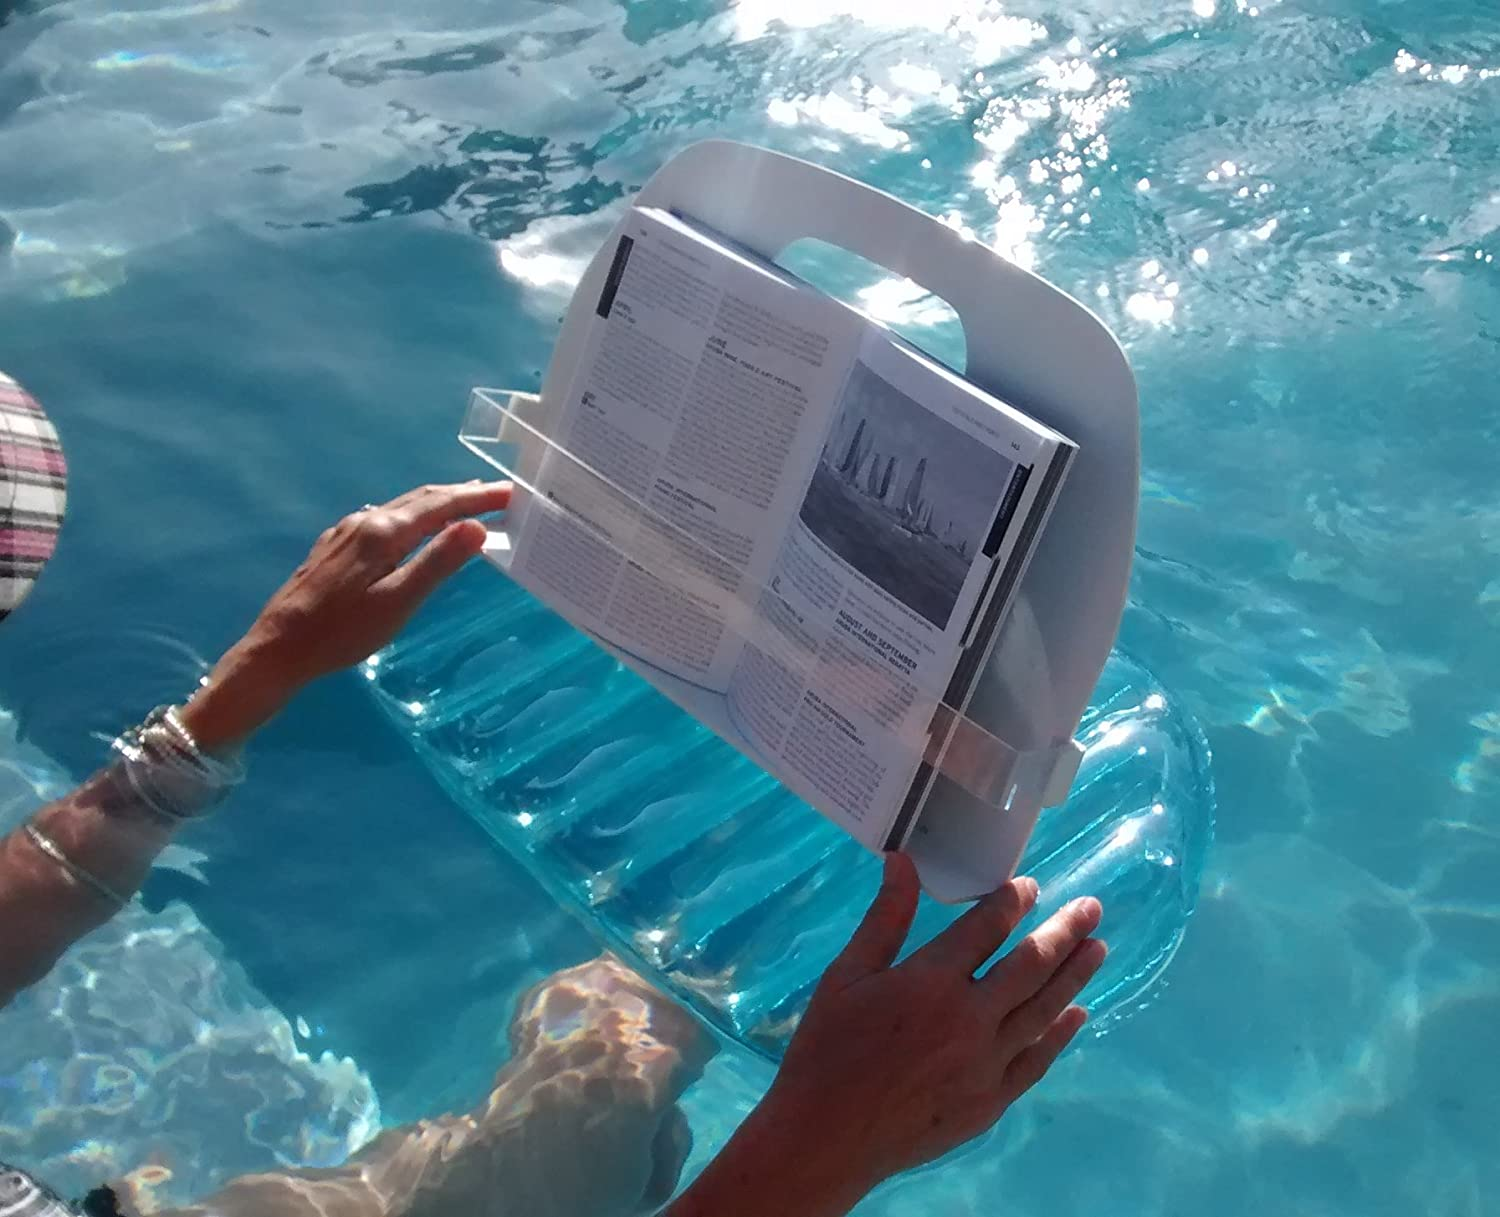 Amazon.com : AquaReader Floating Book/Tablet Caddy for Bath, Pool ...